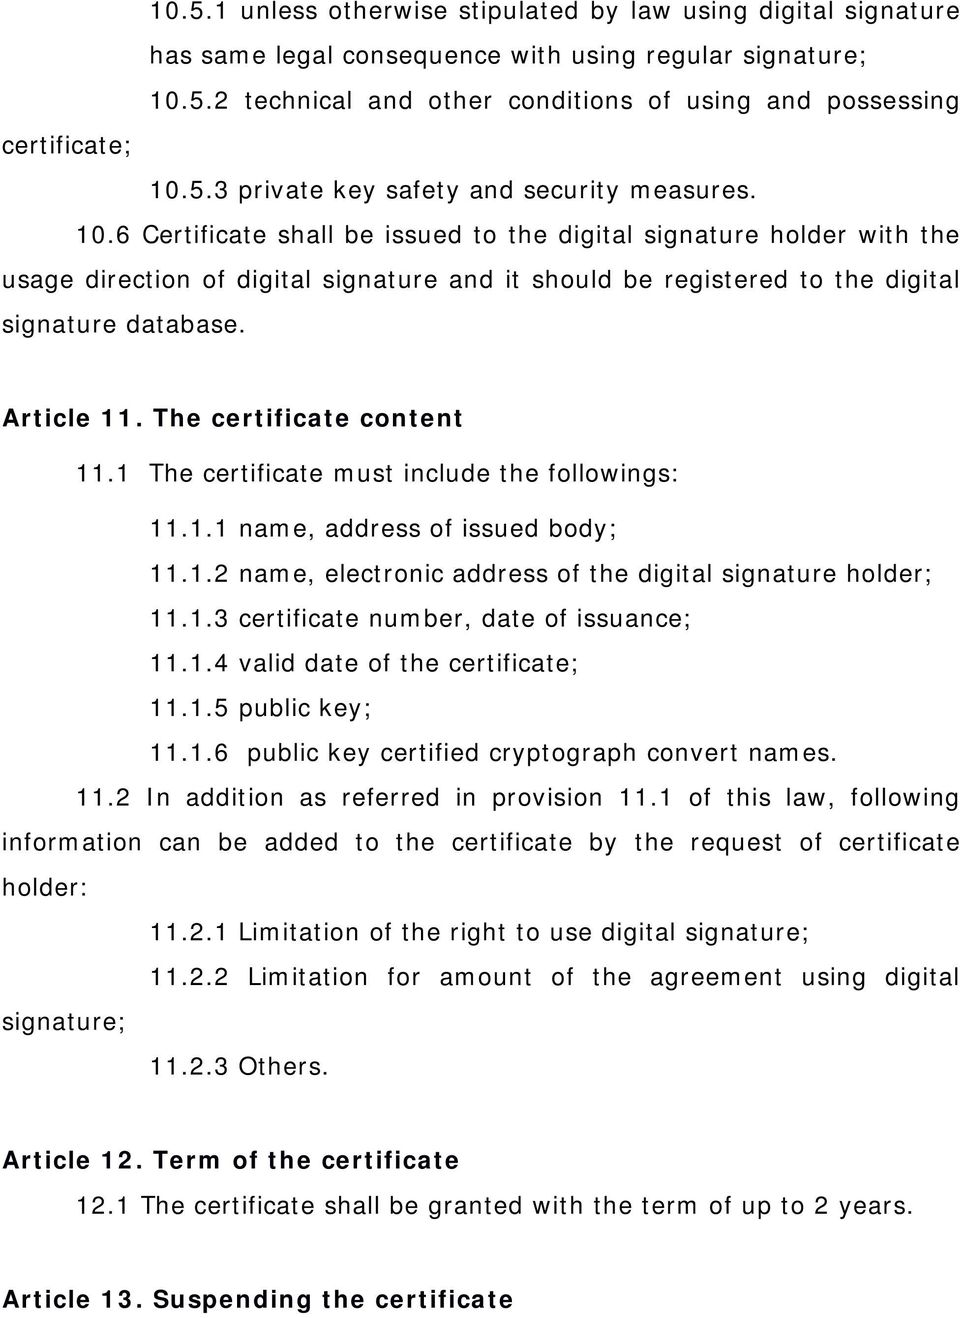 6 Certificate shall be issued to the digital signature holder with the usage direction of digital signature and it should be registered to the digital signature database. Article 11.